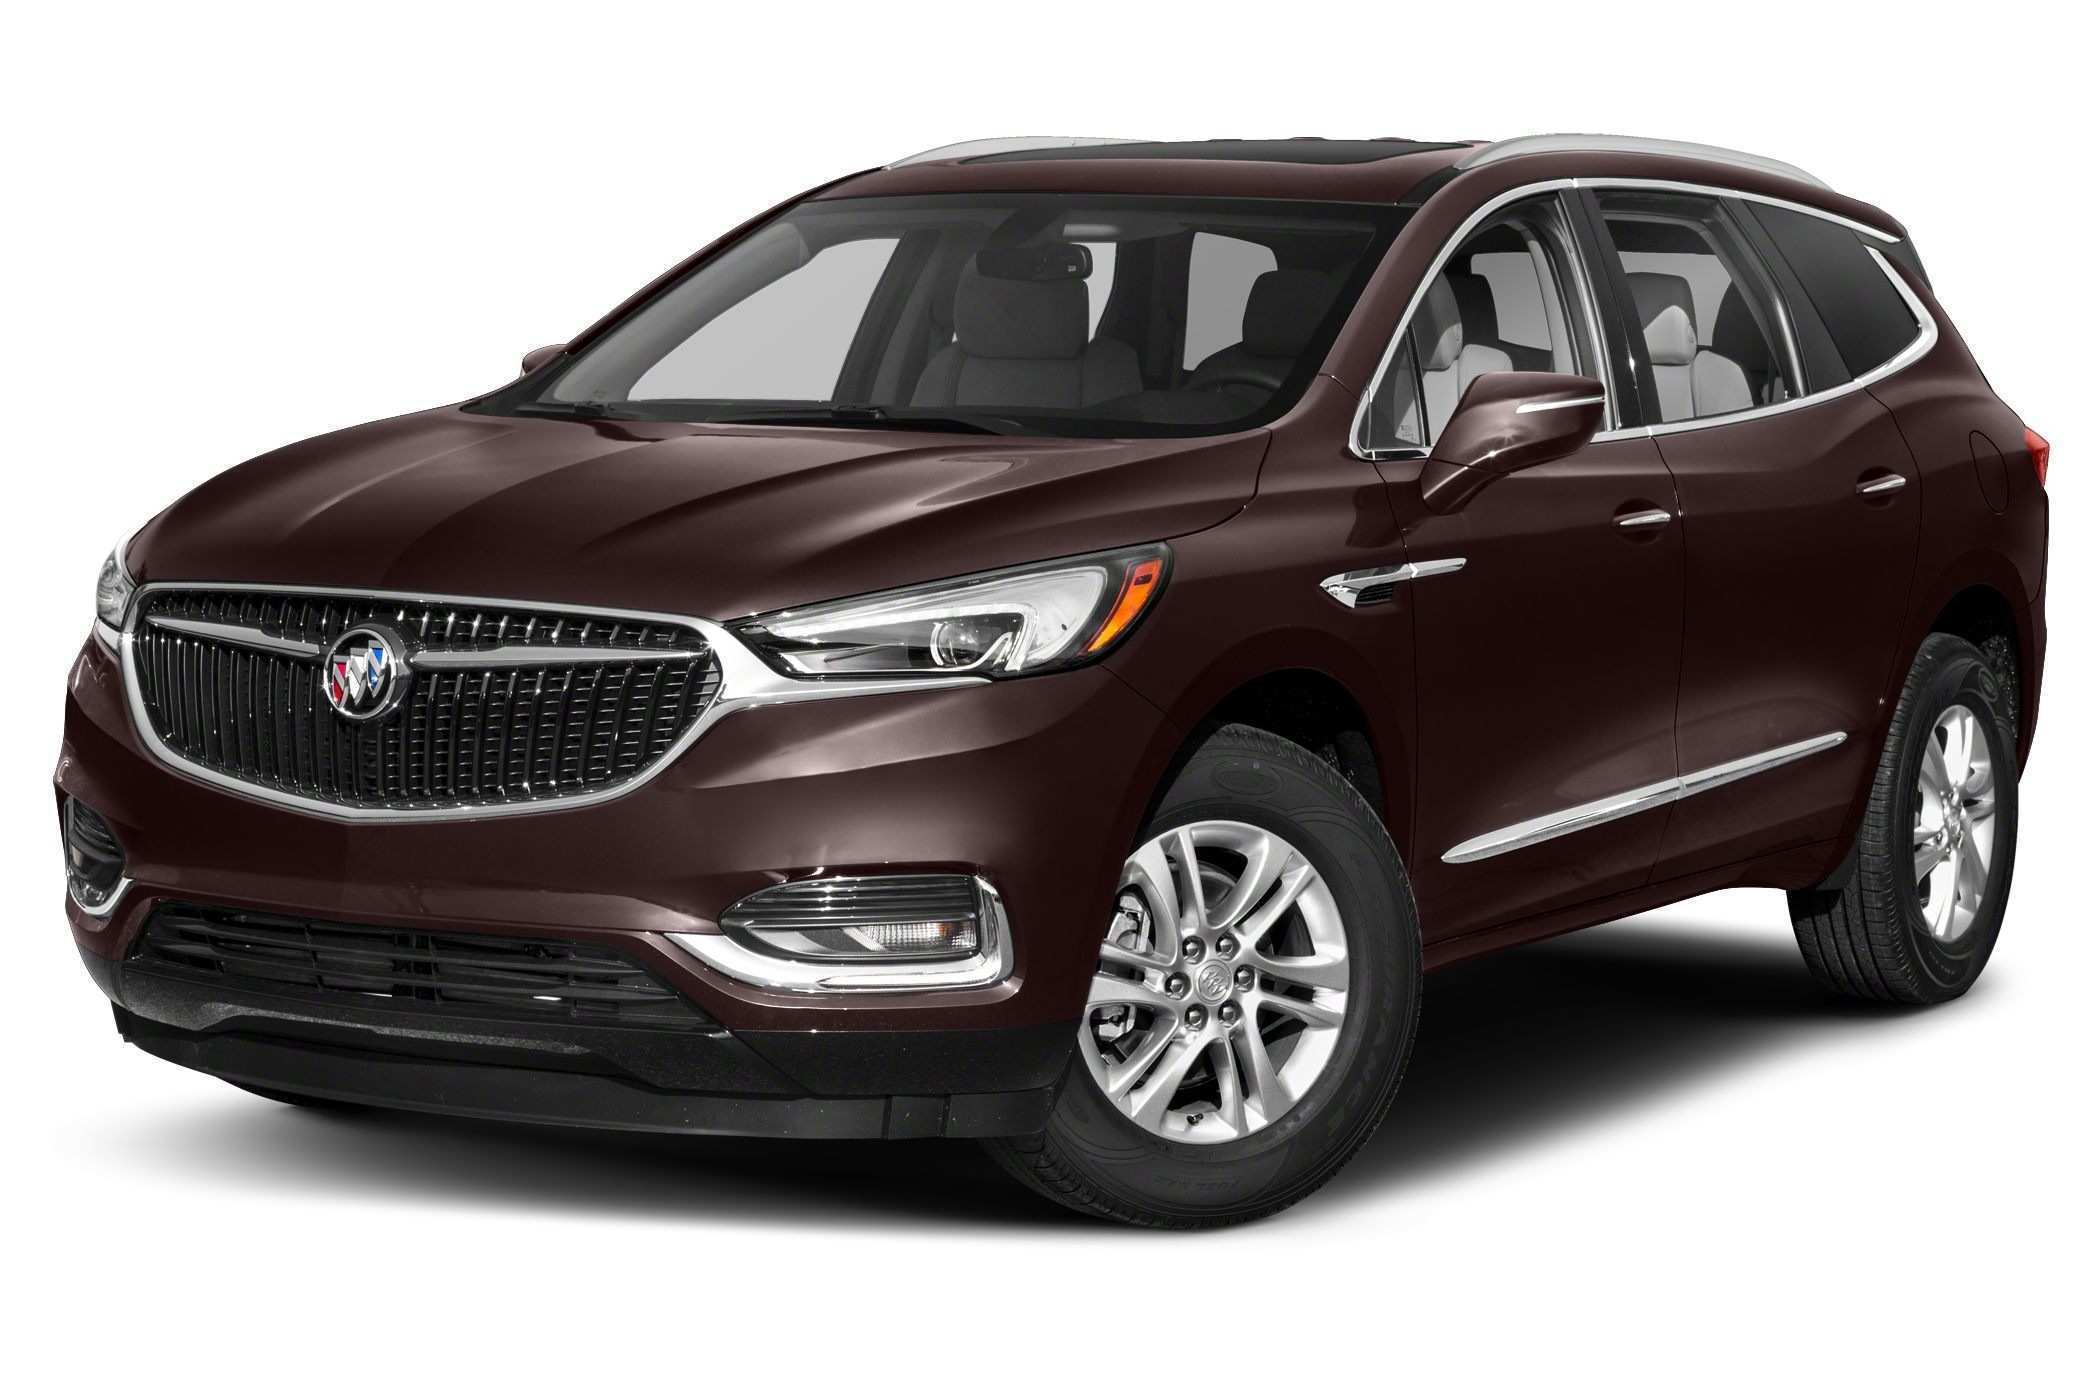 65 A 2020 Buick Enclave Spy Photos Concept